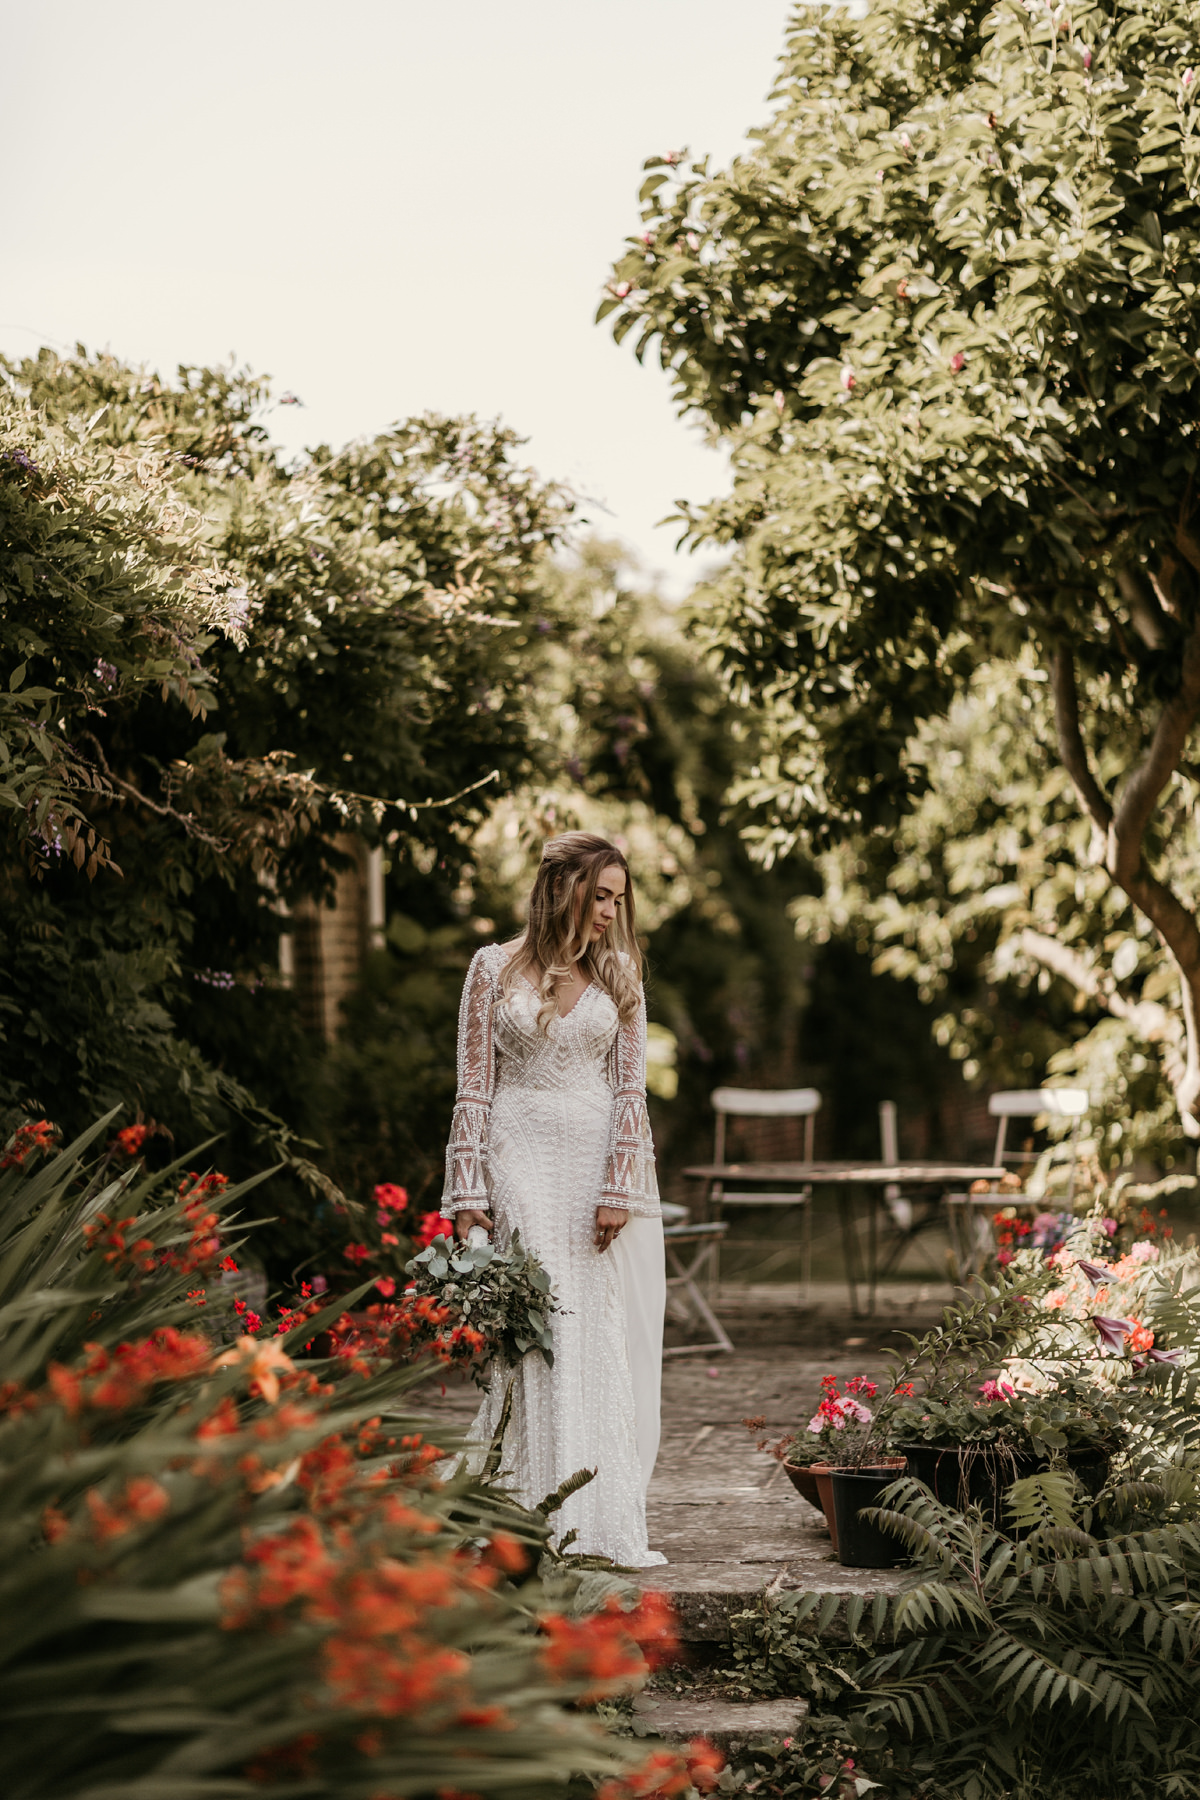 bride wearing a Justin Alexander wedding dress during the portrait session by Green antlers Photography, preston court wedding venue by Canterbury wedding photographers